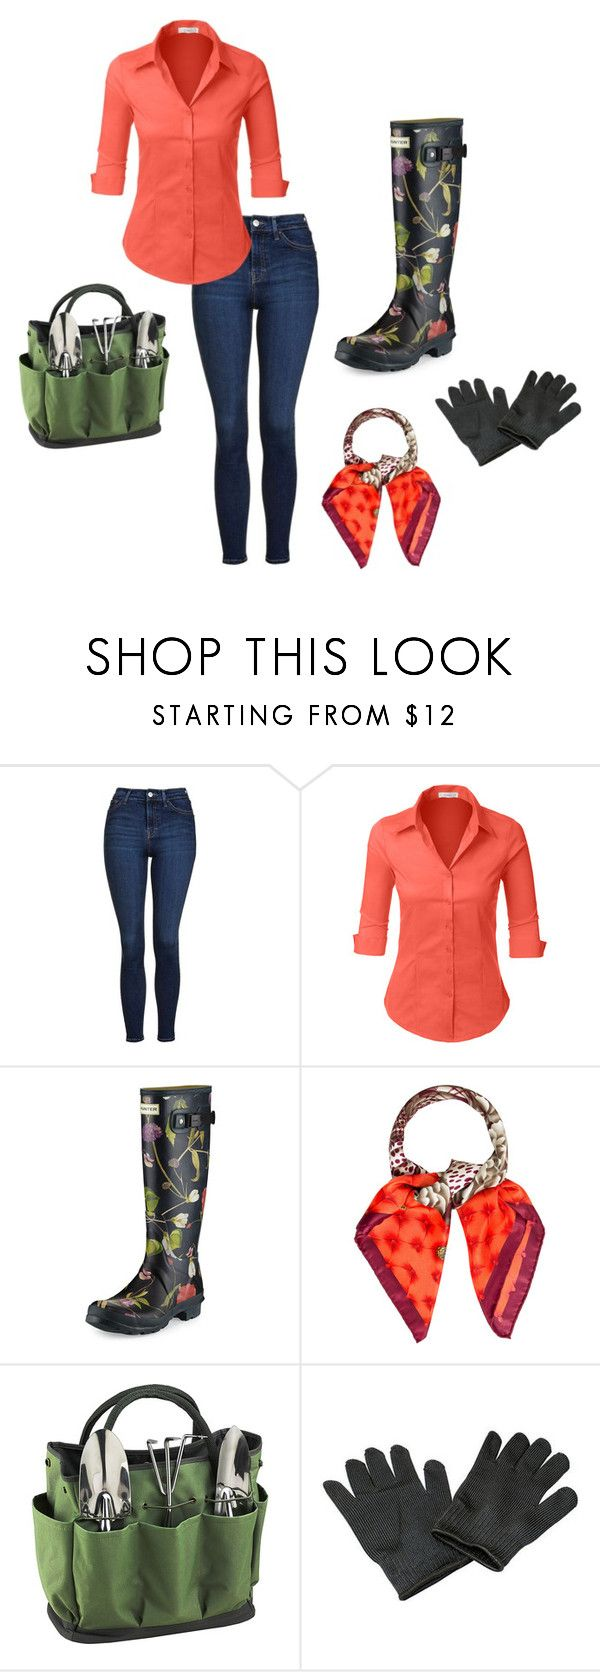 Gardening by hildefossen on Polyvore featuring LE3NO, Topshop, Hunter, Salvatore Ferragamo and Picnic at Ascot